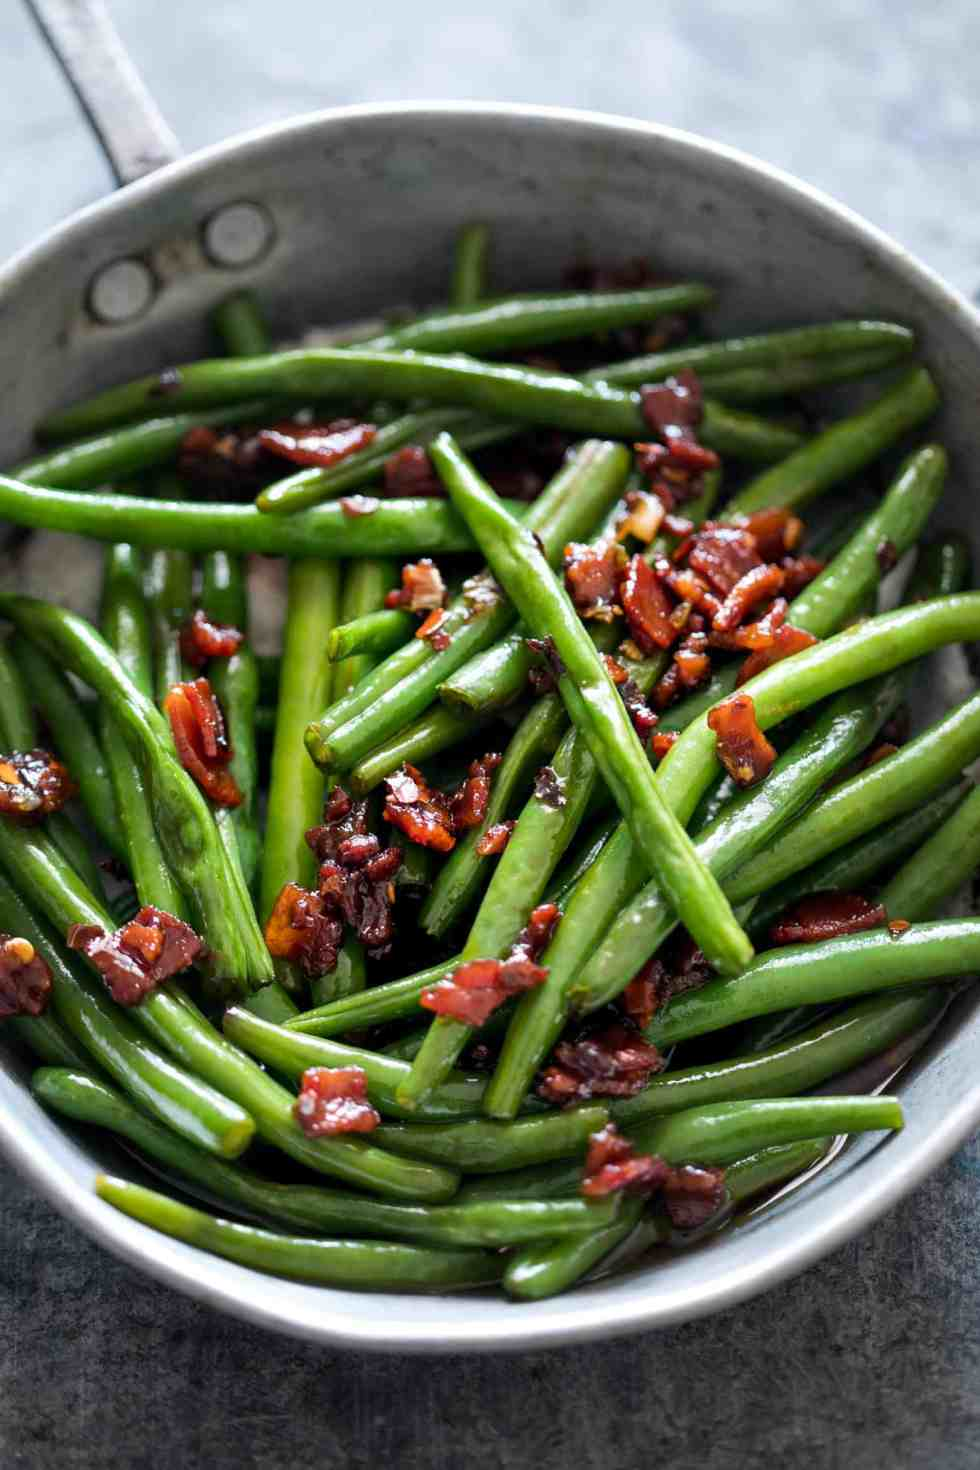 Sauteed Brown Sugar Bacon Garlic Green Beans is an insanely delicious side dish - sweet, garlicky with bits of candied bacon. Everyone will ask for seconds!